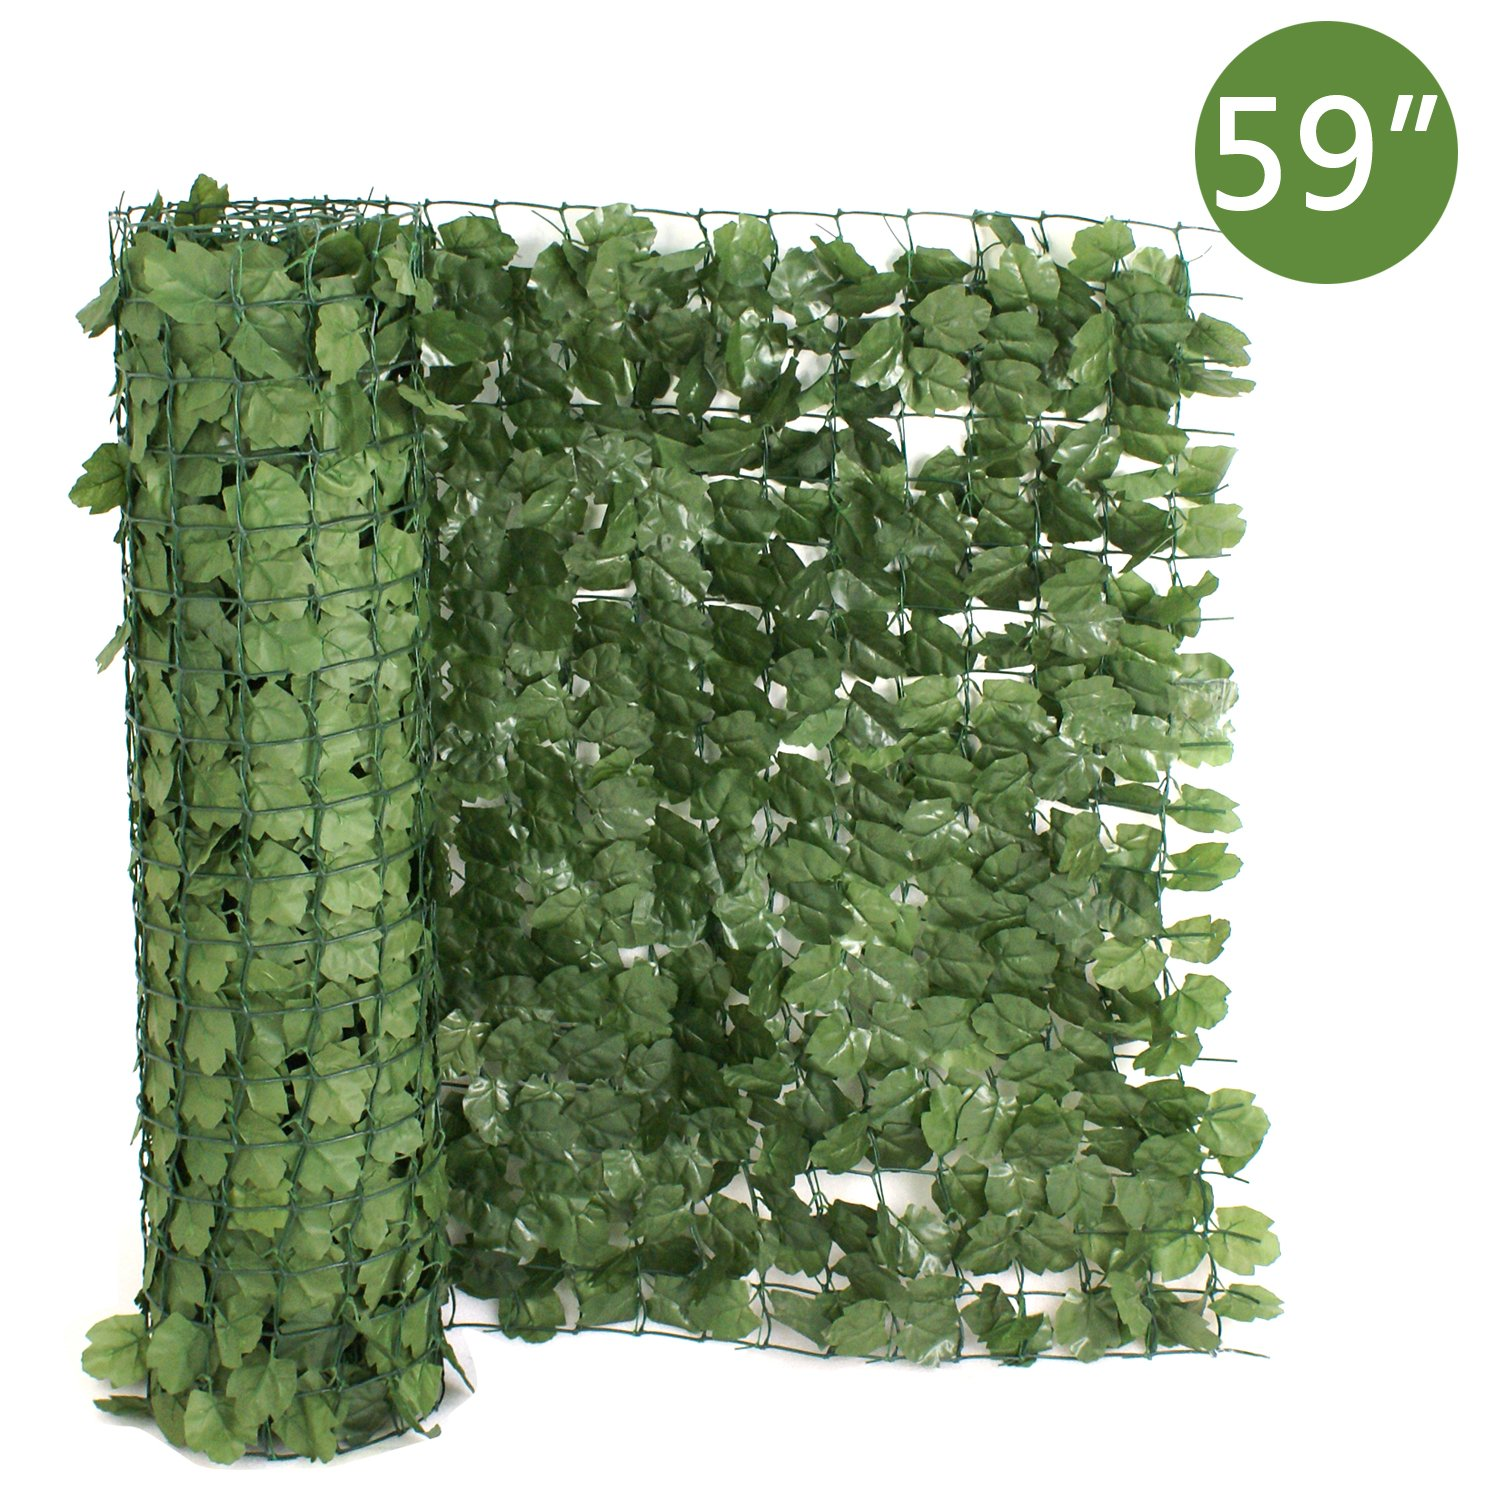 SUPER DEAL 94'' X 59'' Faux Ivy Privacy Fence Screen Artificial Hedge Fencing Outdoor Decor